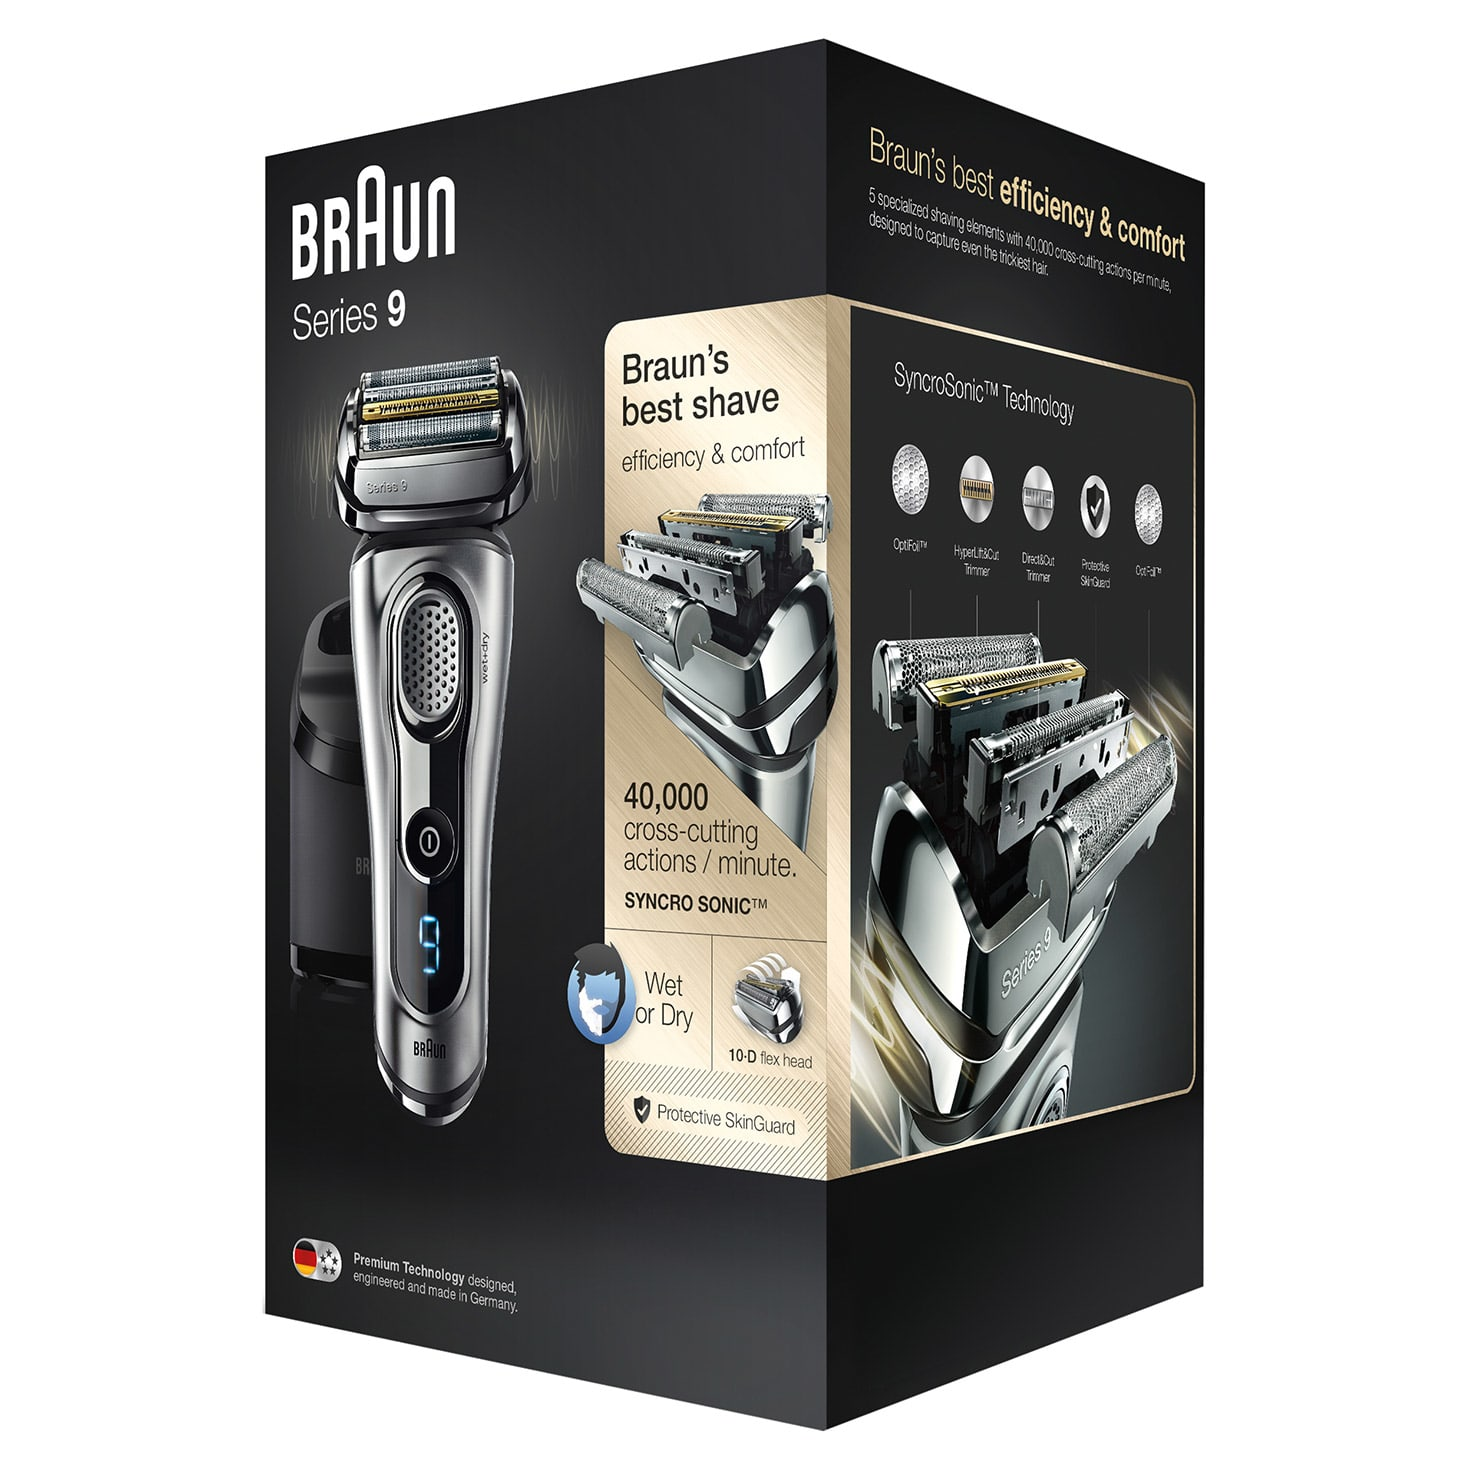 Series 9 9290cc Wet & Dry shaver image 5